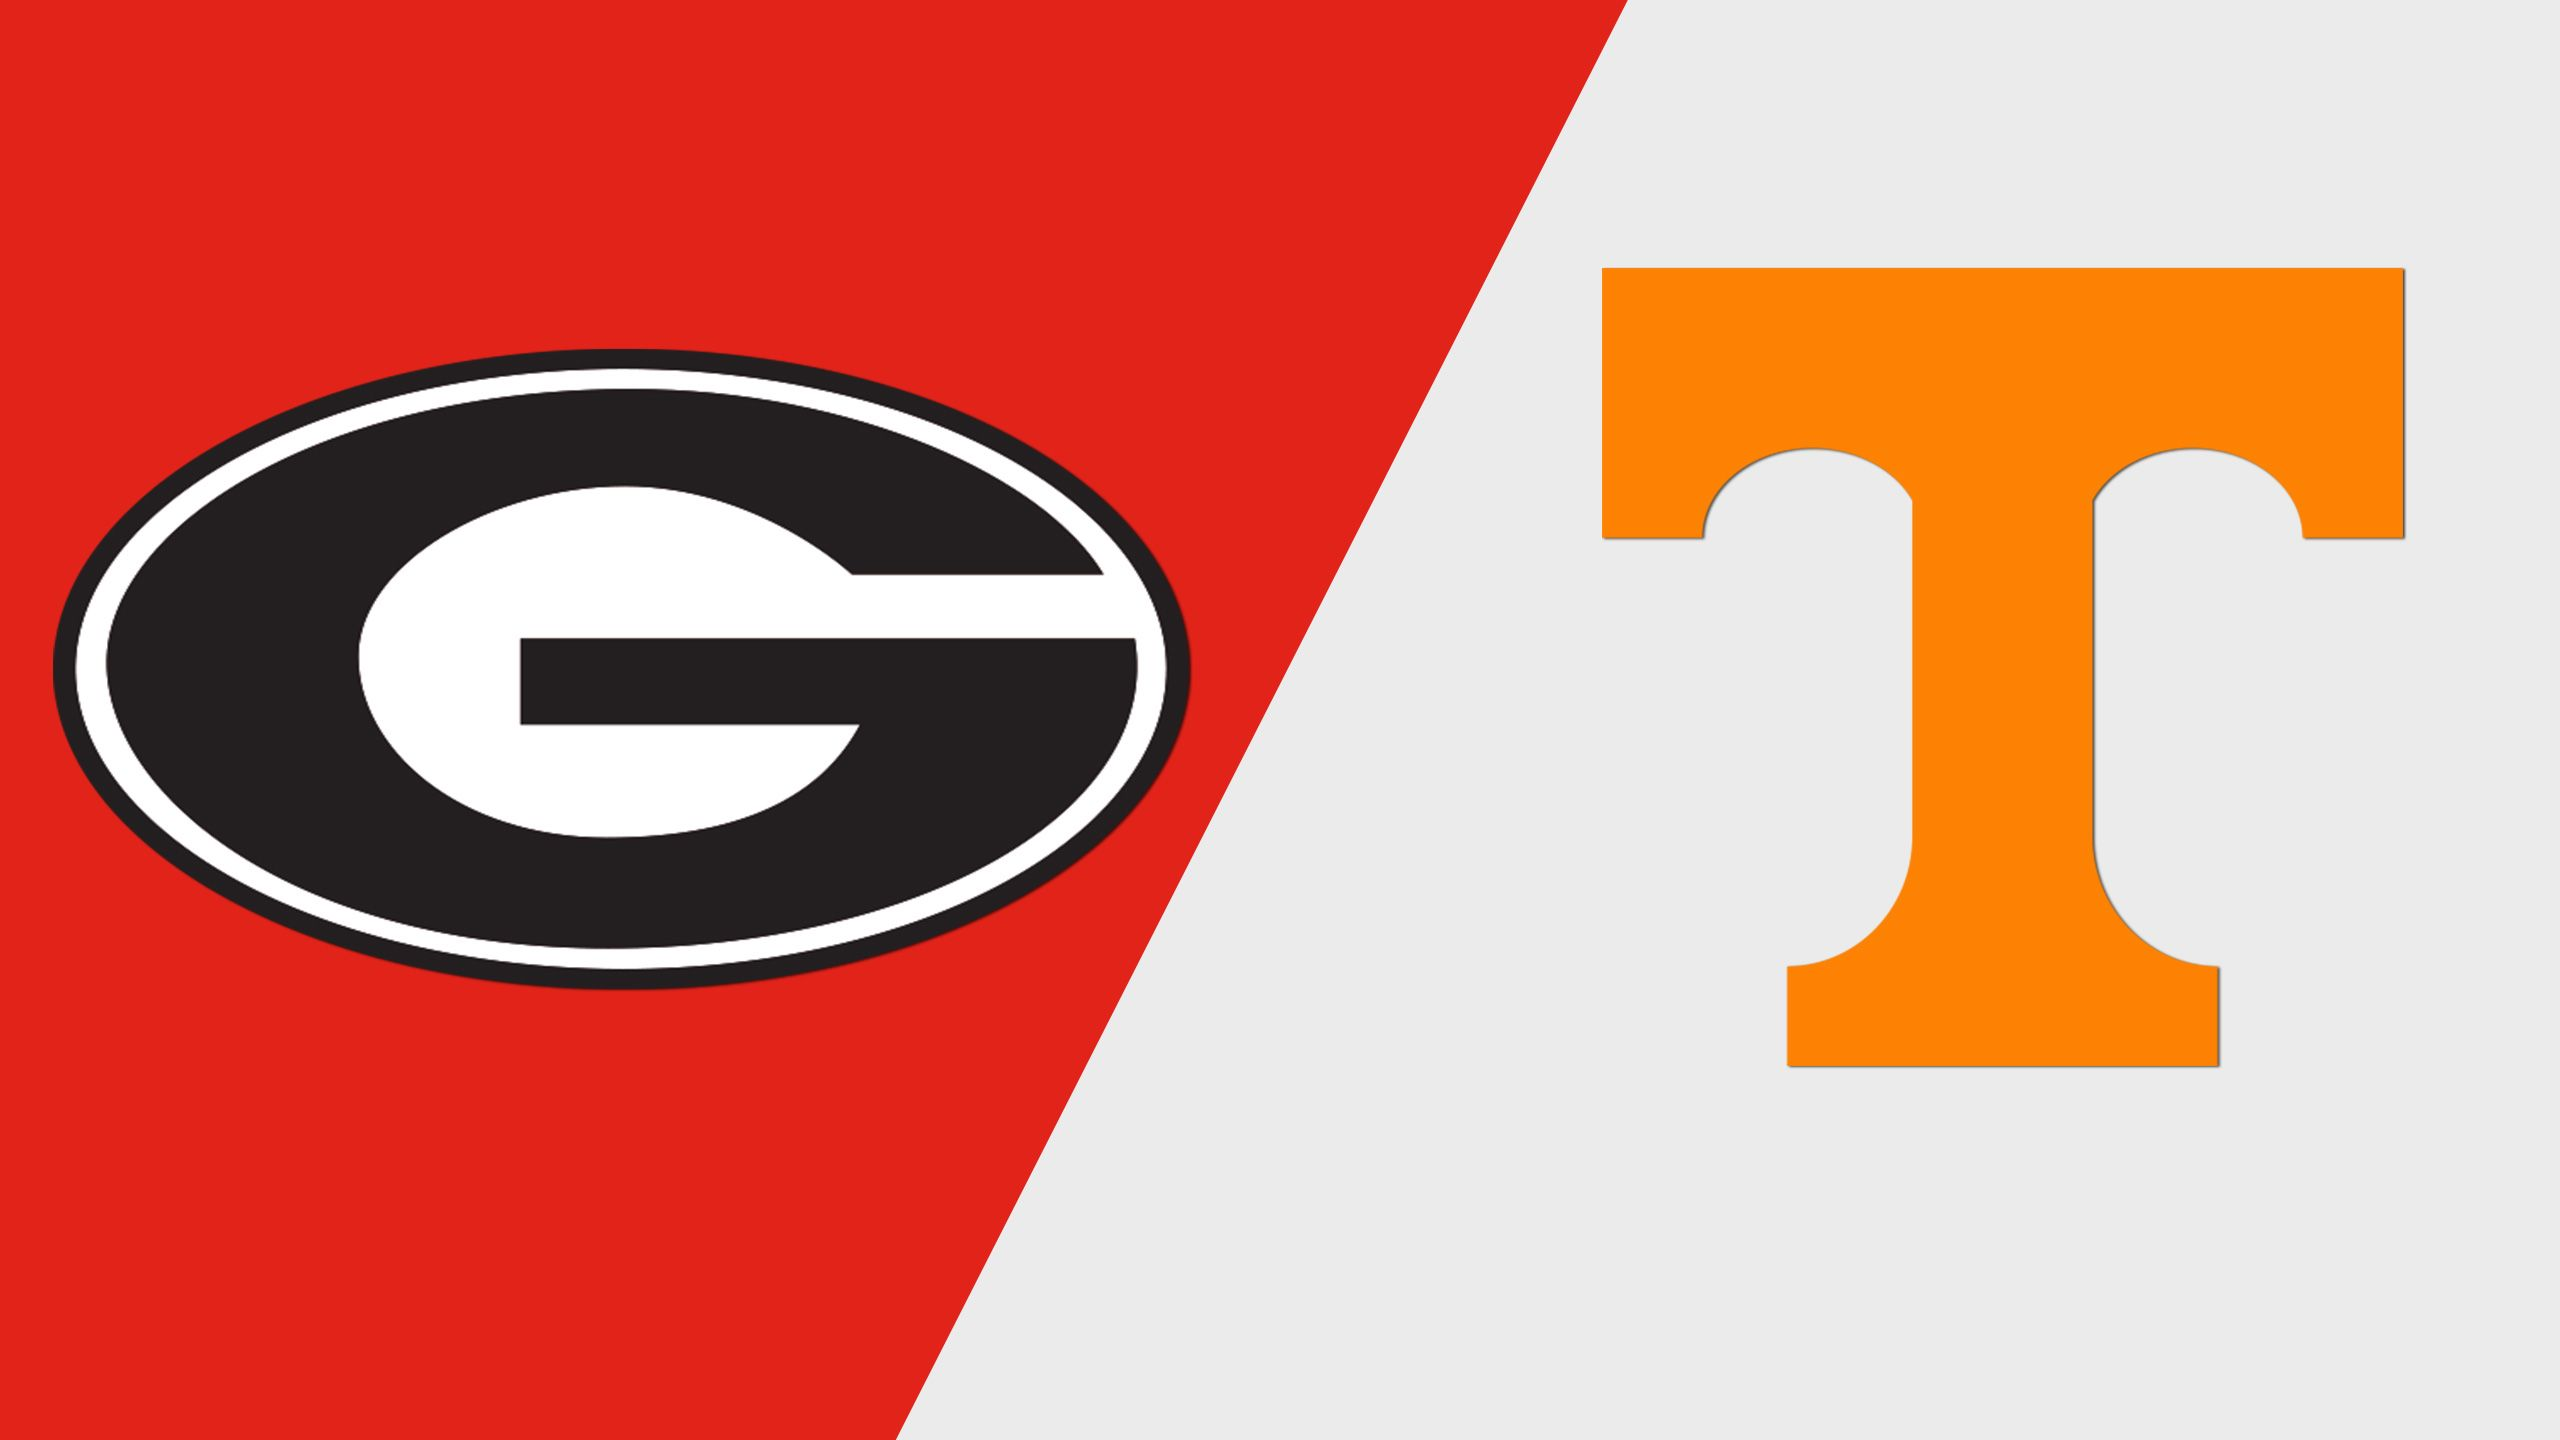 #7 Georgia vs. #10 Tennessee (Site 6 / Game 2) (NCAA Softball Championship) (re-air)